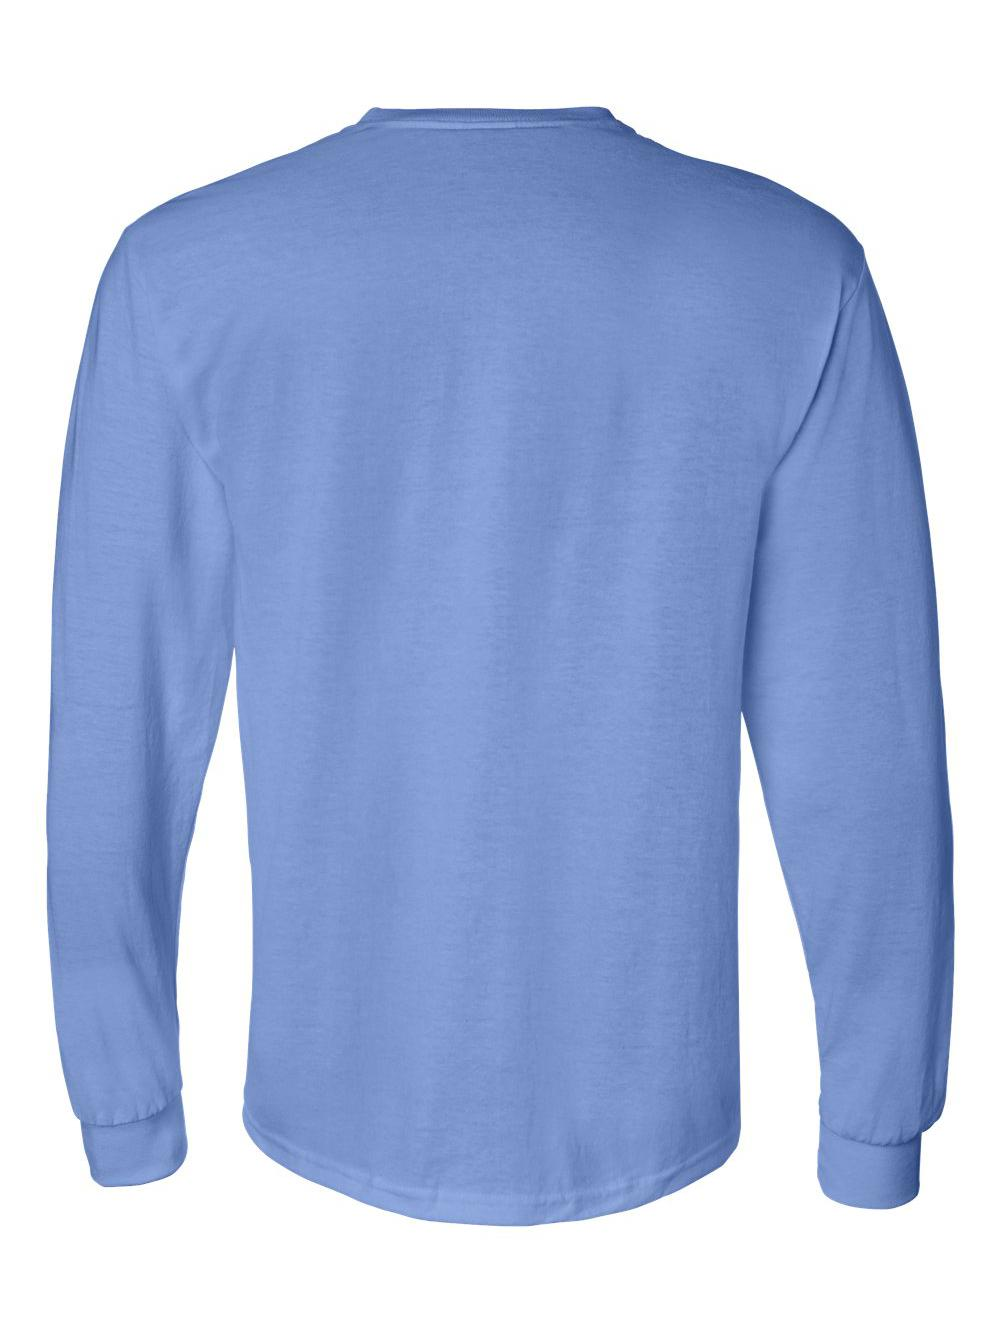 Gildan-DryBlend-50-50-Long-Sleeve-T-Shirt-8400 thumbnail 10